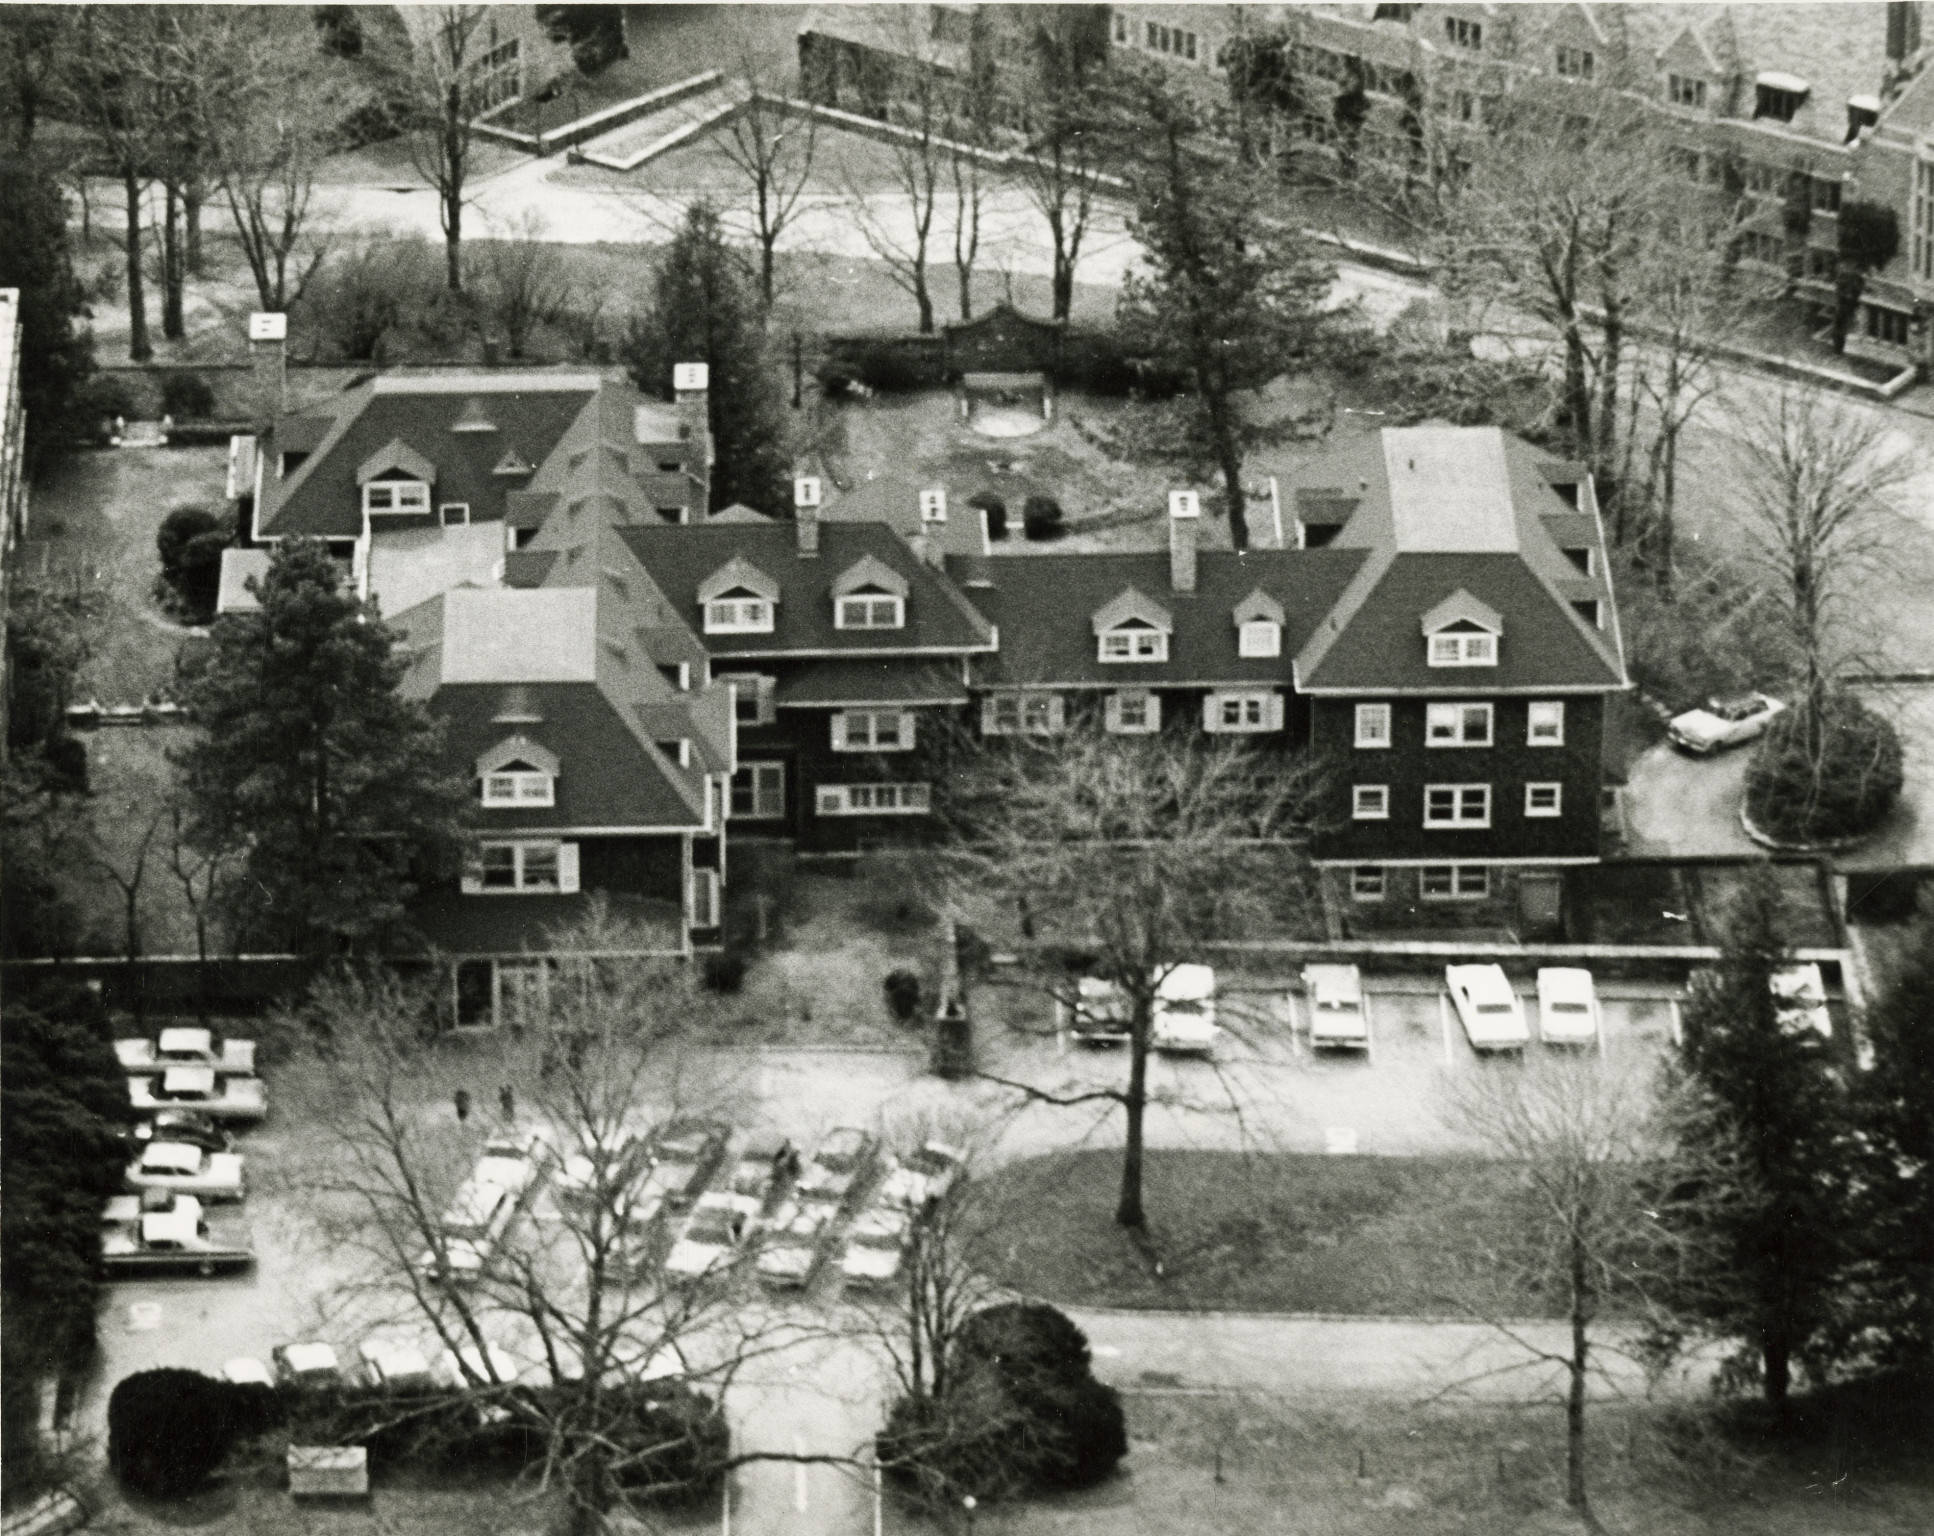 Deanery_Aerial_View